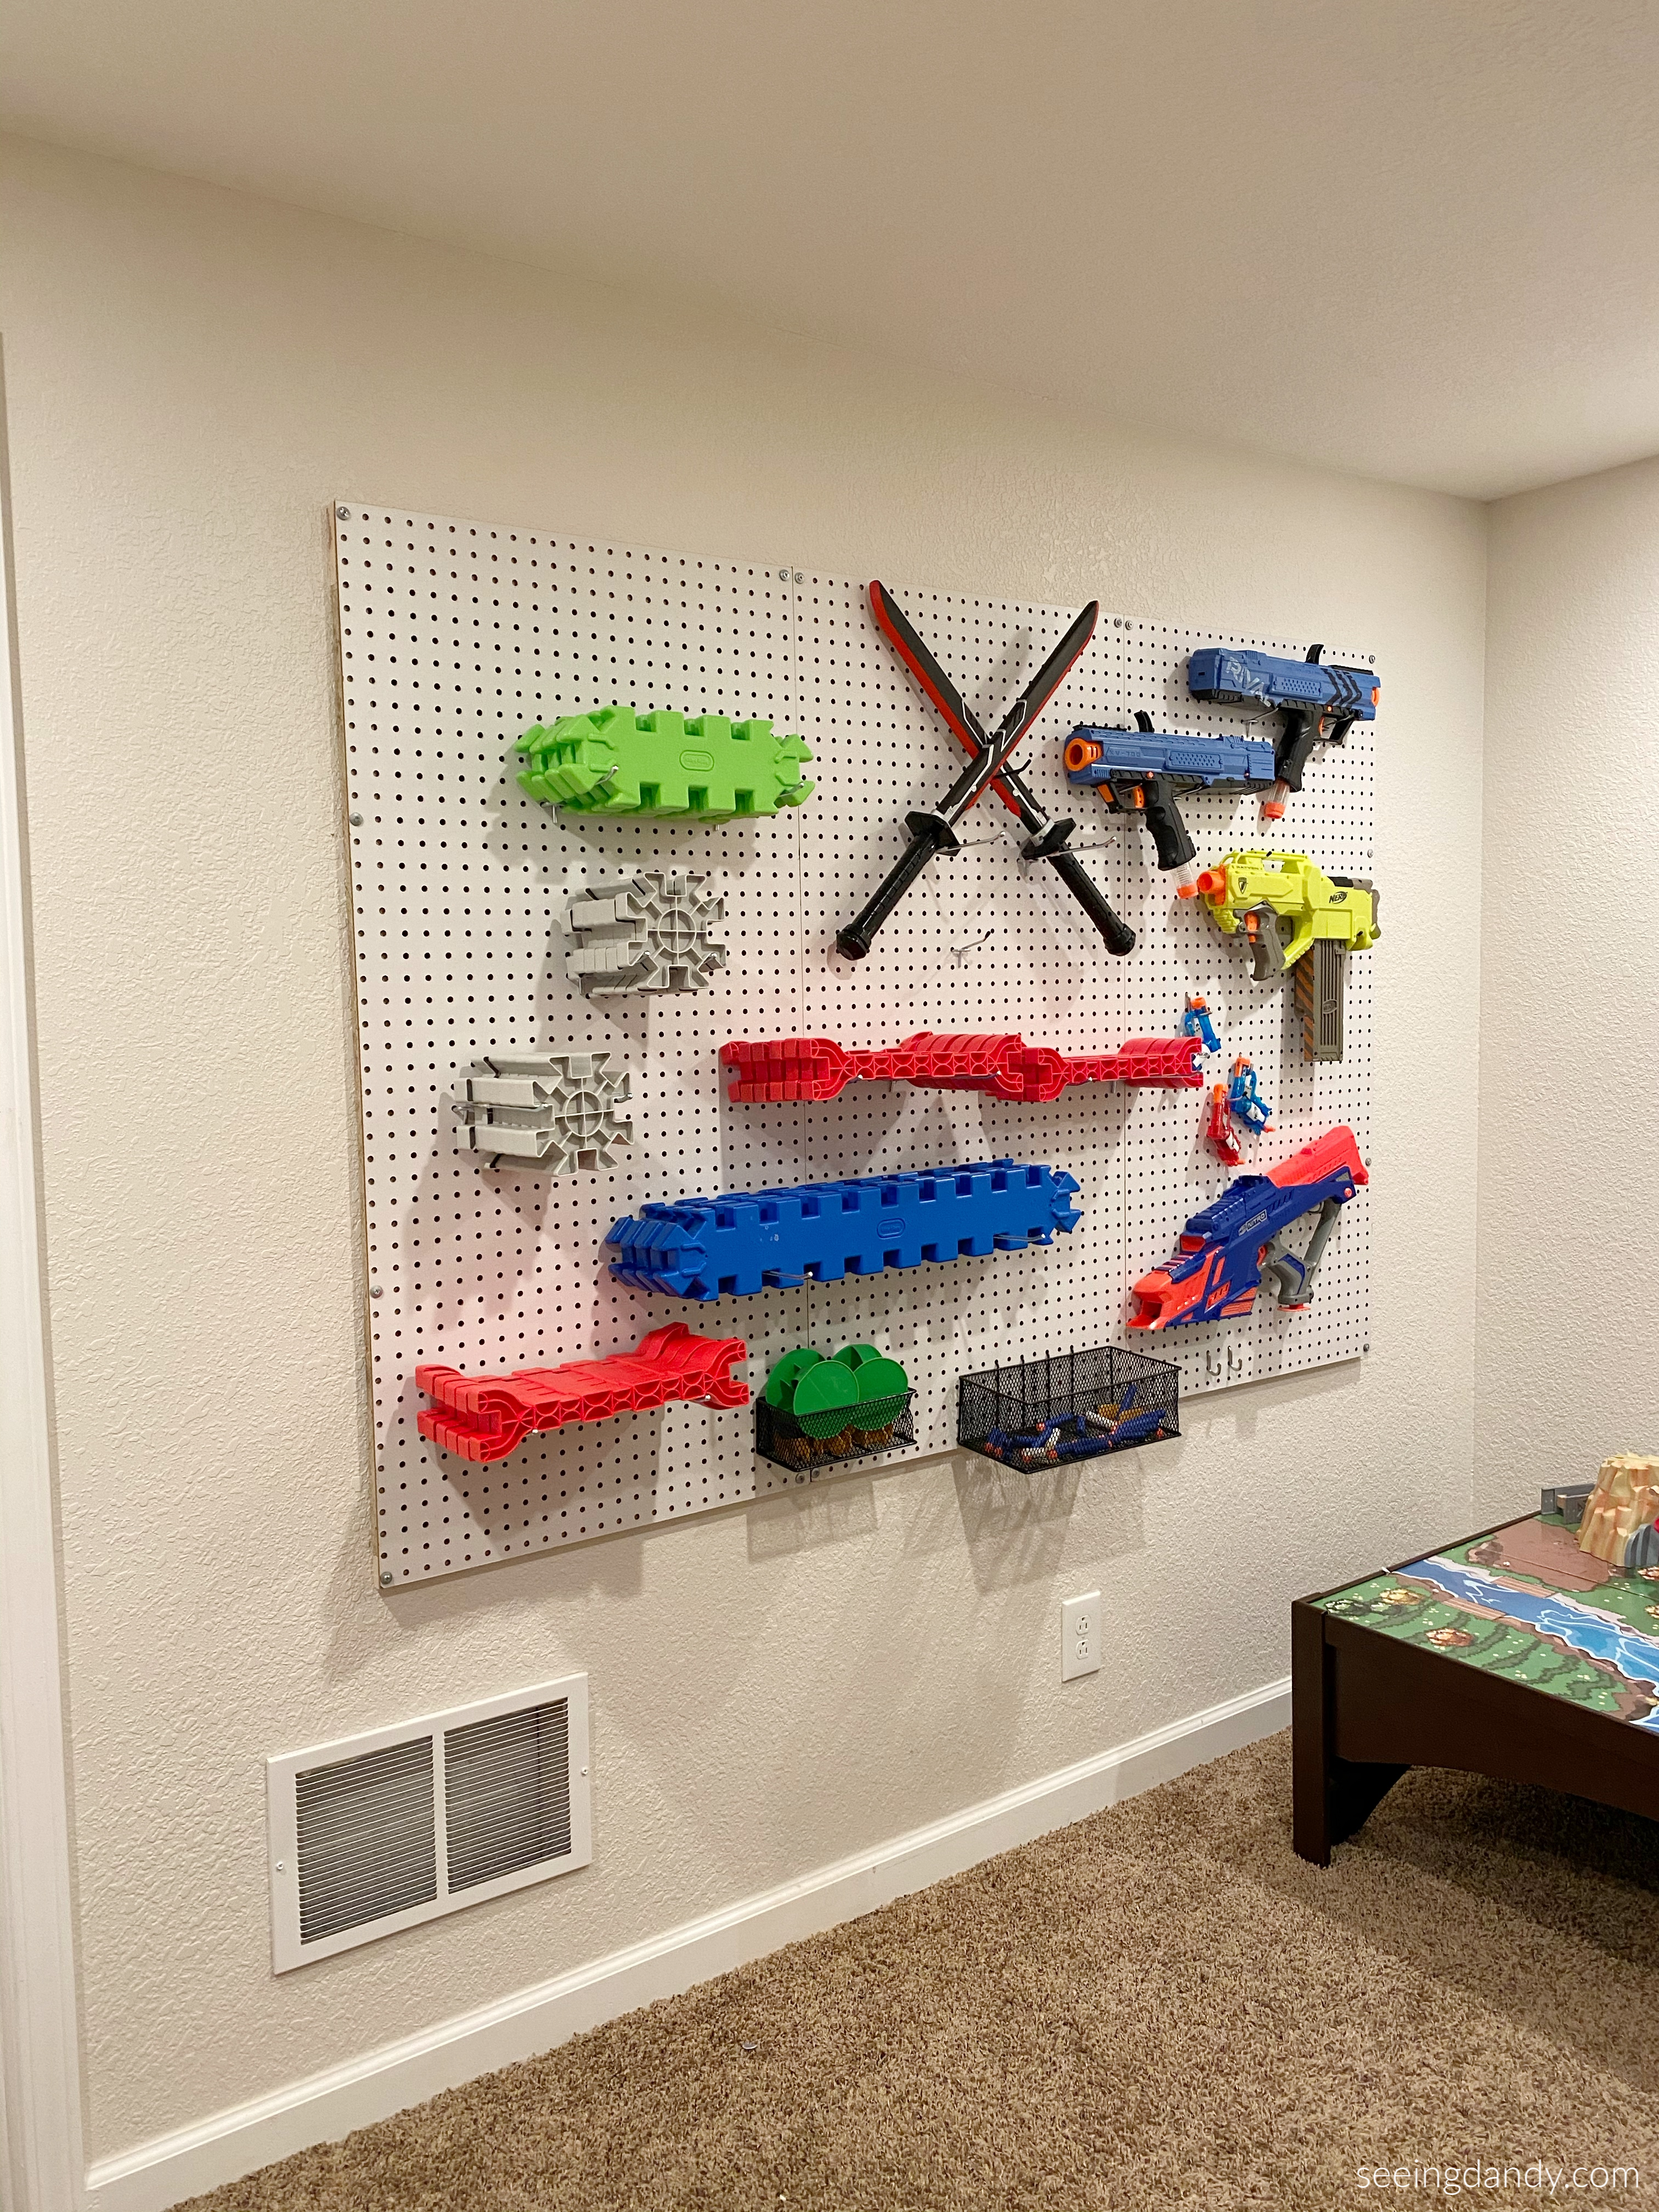 Easy to build nerf gun storage wall organizing playroom idea